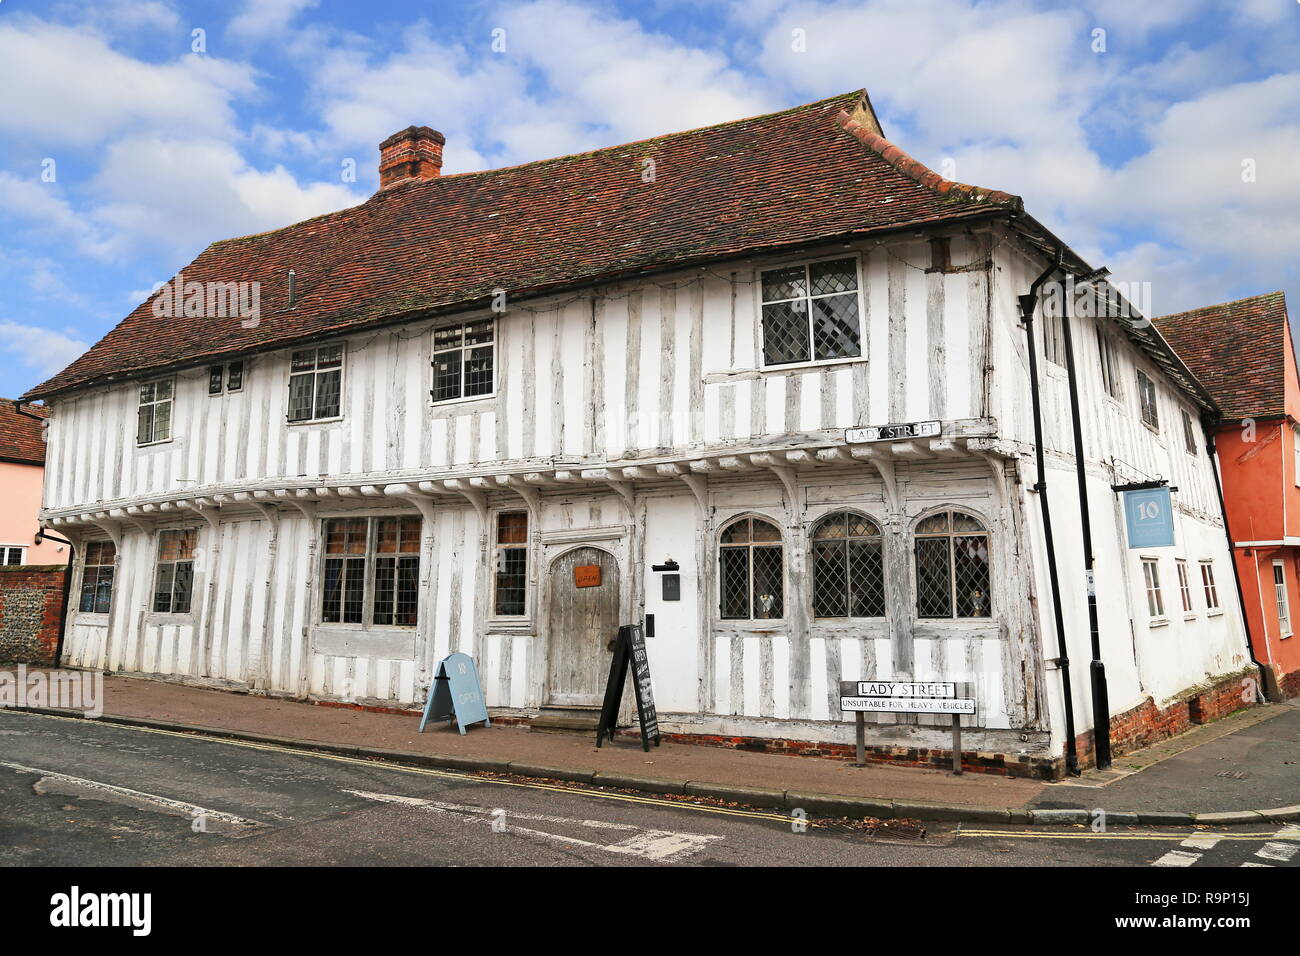 Number Ten Wine Bar & Kitchen, Lady Street, Lavenham, Babergh district, Suffolk, East Anglia, England, Great Britain, United Kingdom, UK, Europe - Stock Image